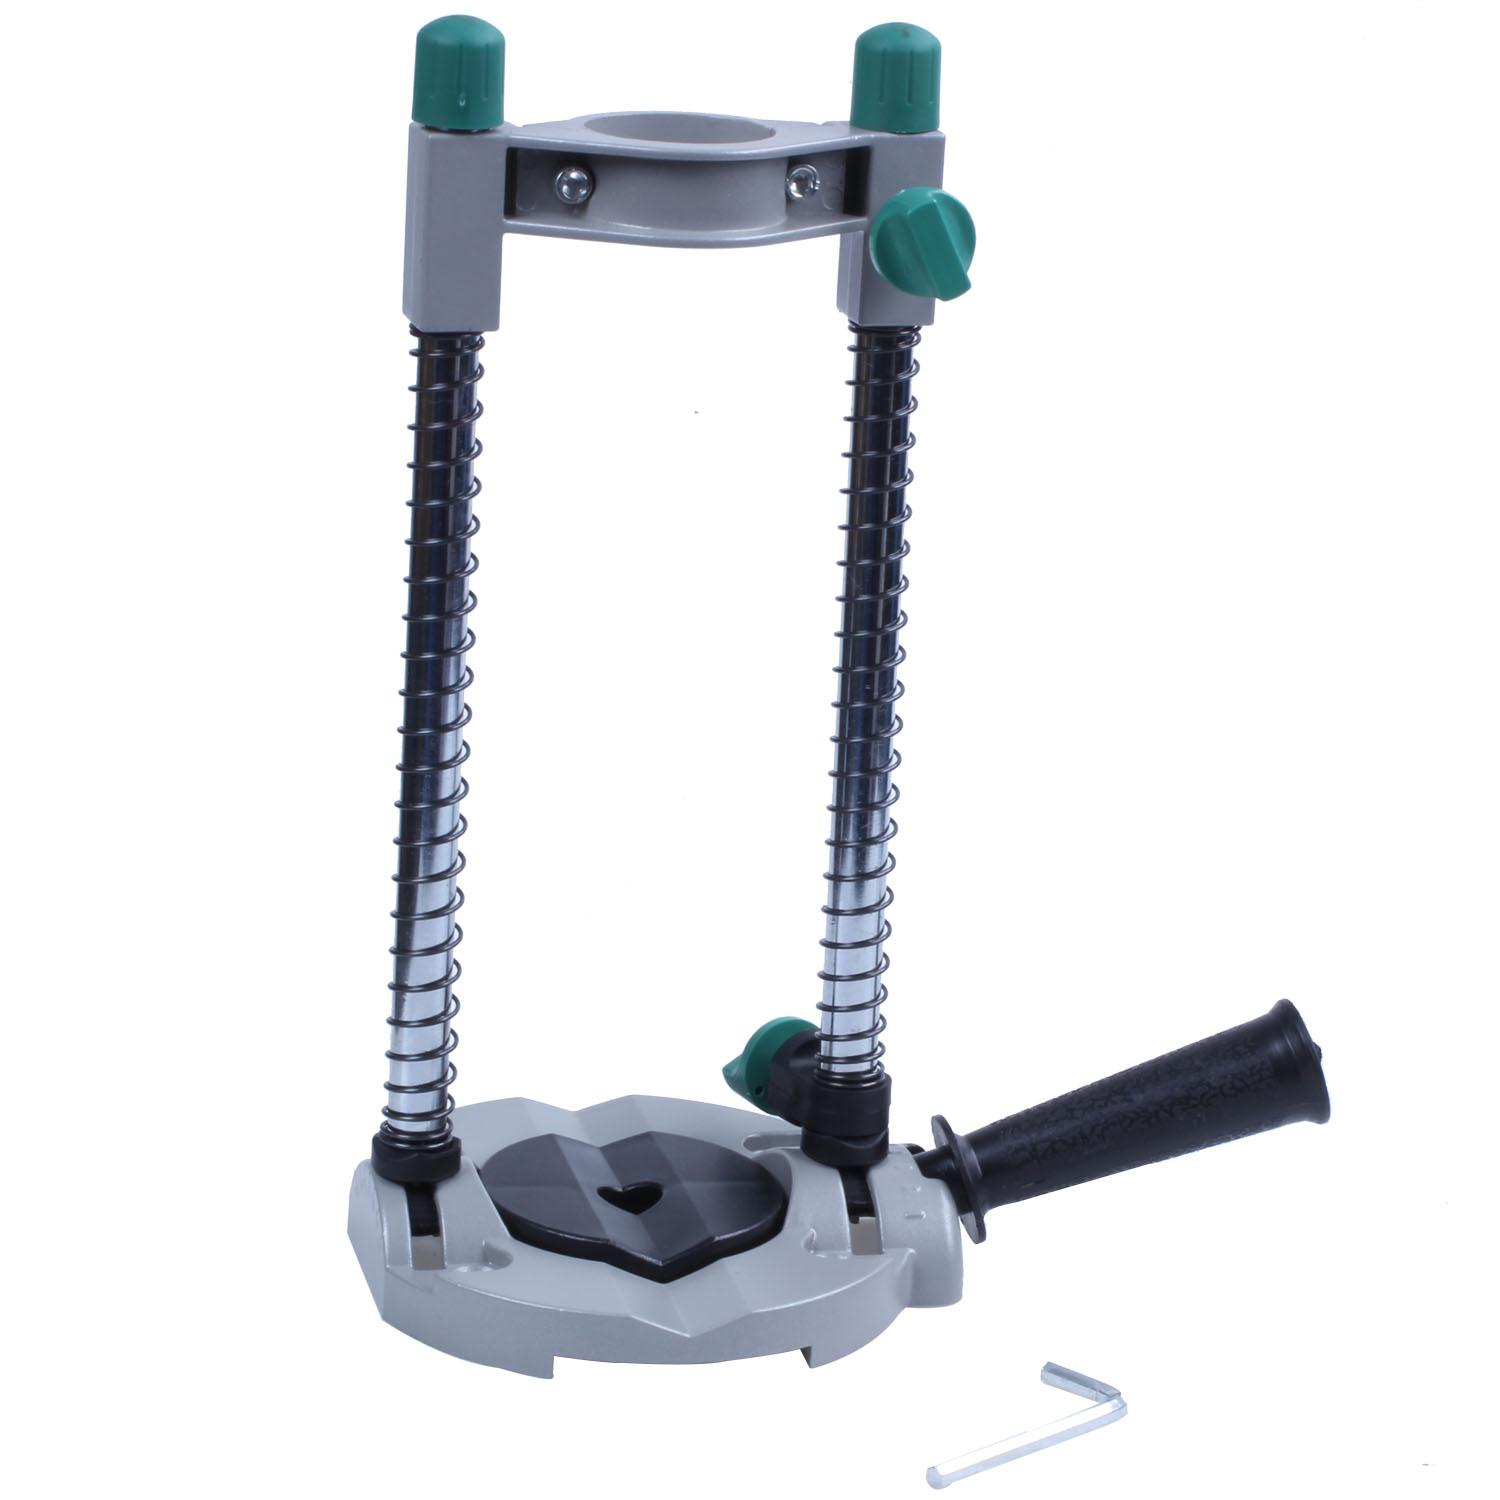 Precision Drill Guide Pipe Drill Holder Stand Drilling Guide With Adjustable Angle And Removable Handle DIY Tool High Quality